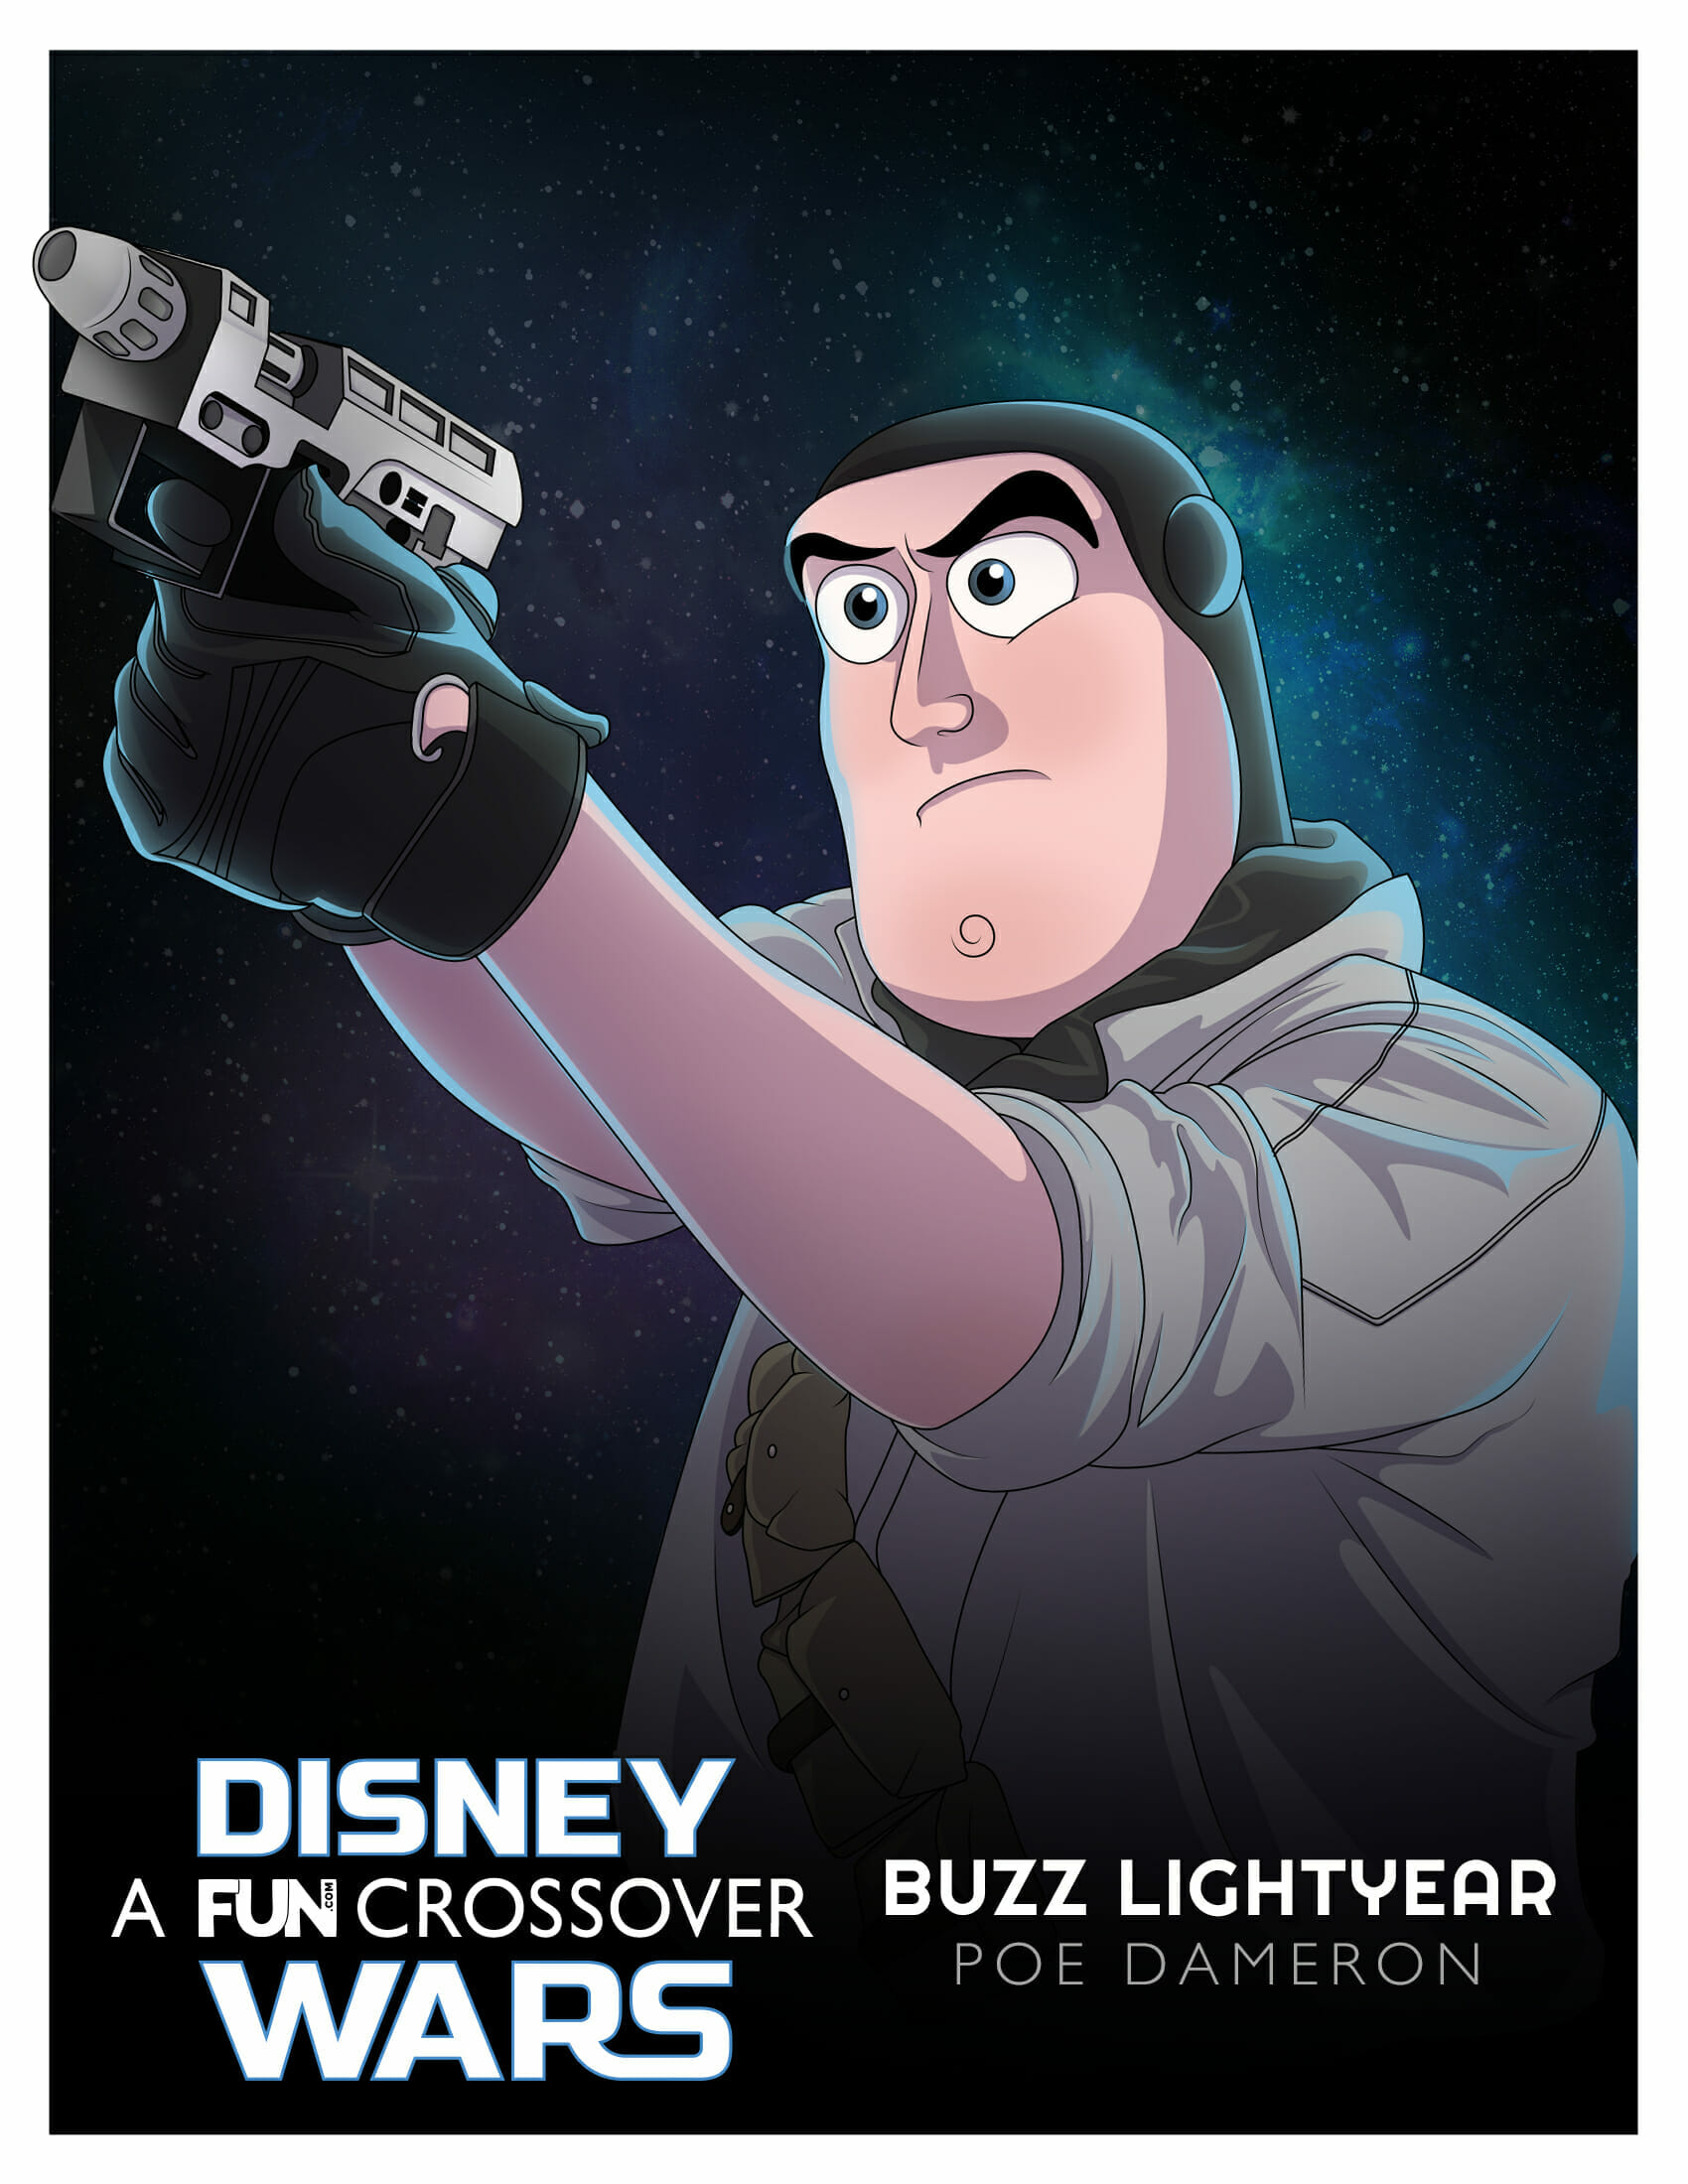 Buzz Lightyear Poe Dameron